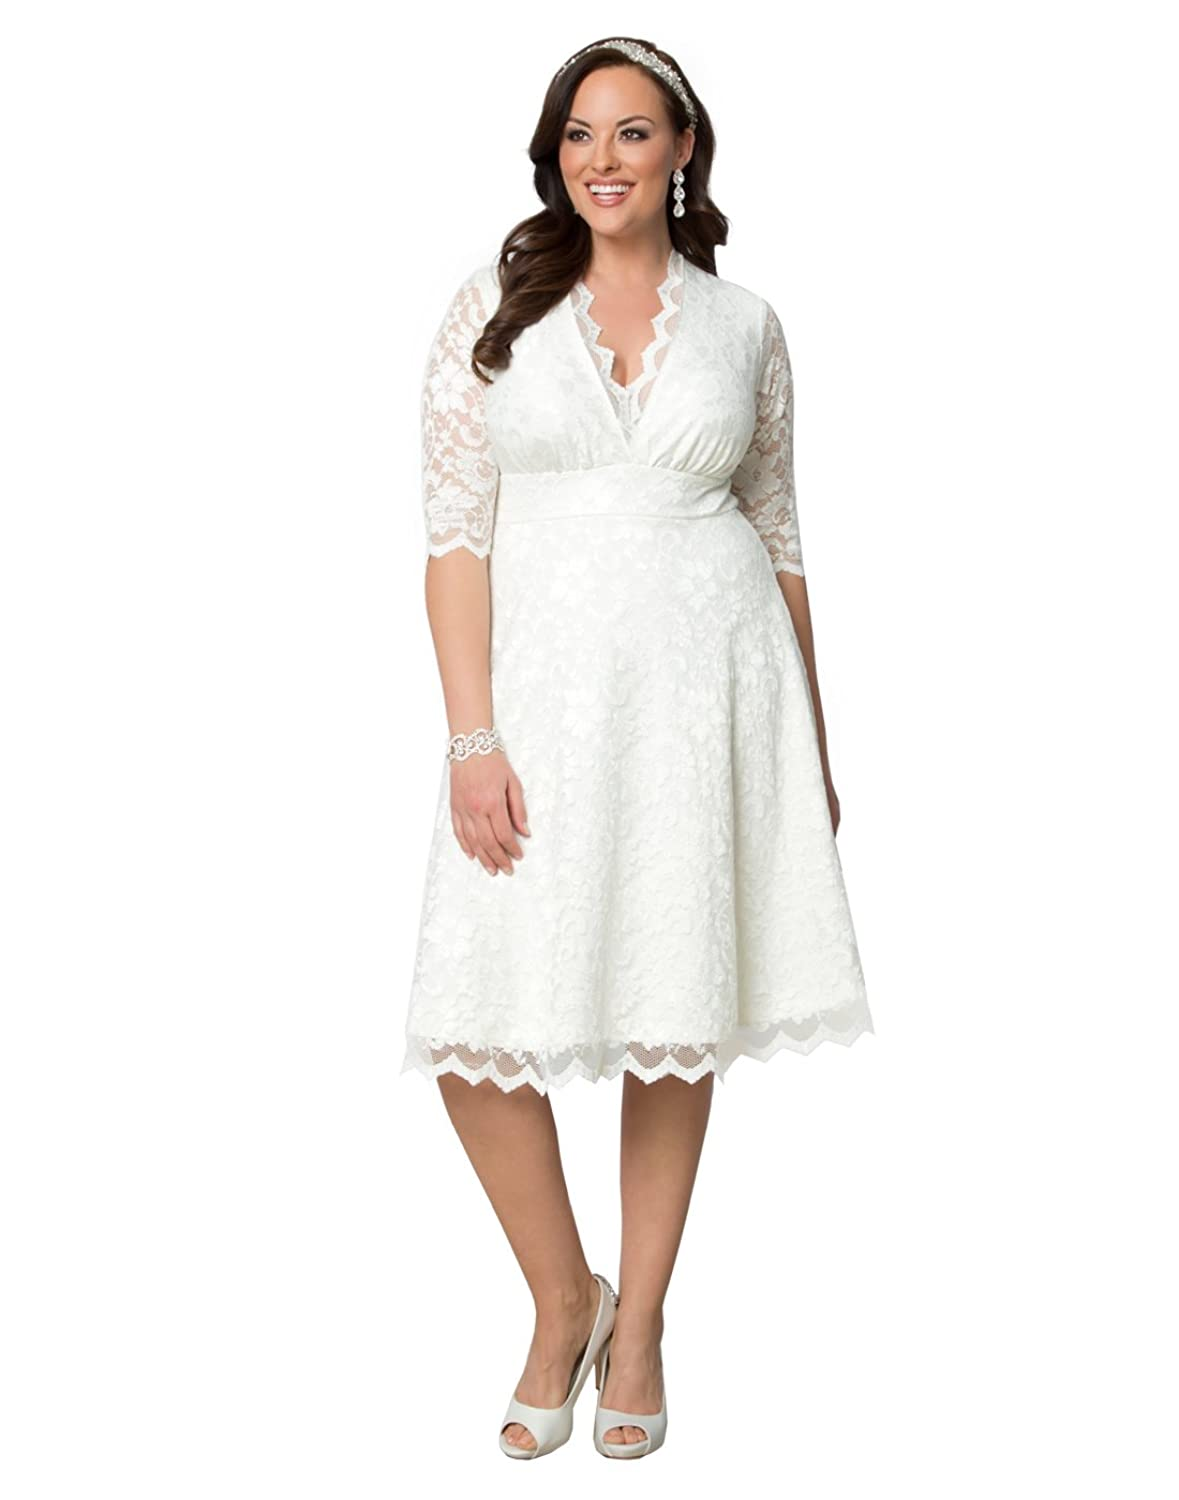 Plus Size Retro Dresses Kiyonna Womens Plus Size Wedding Belle Dress $248.00 AT vintagedancer.com